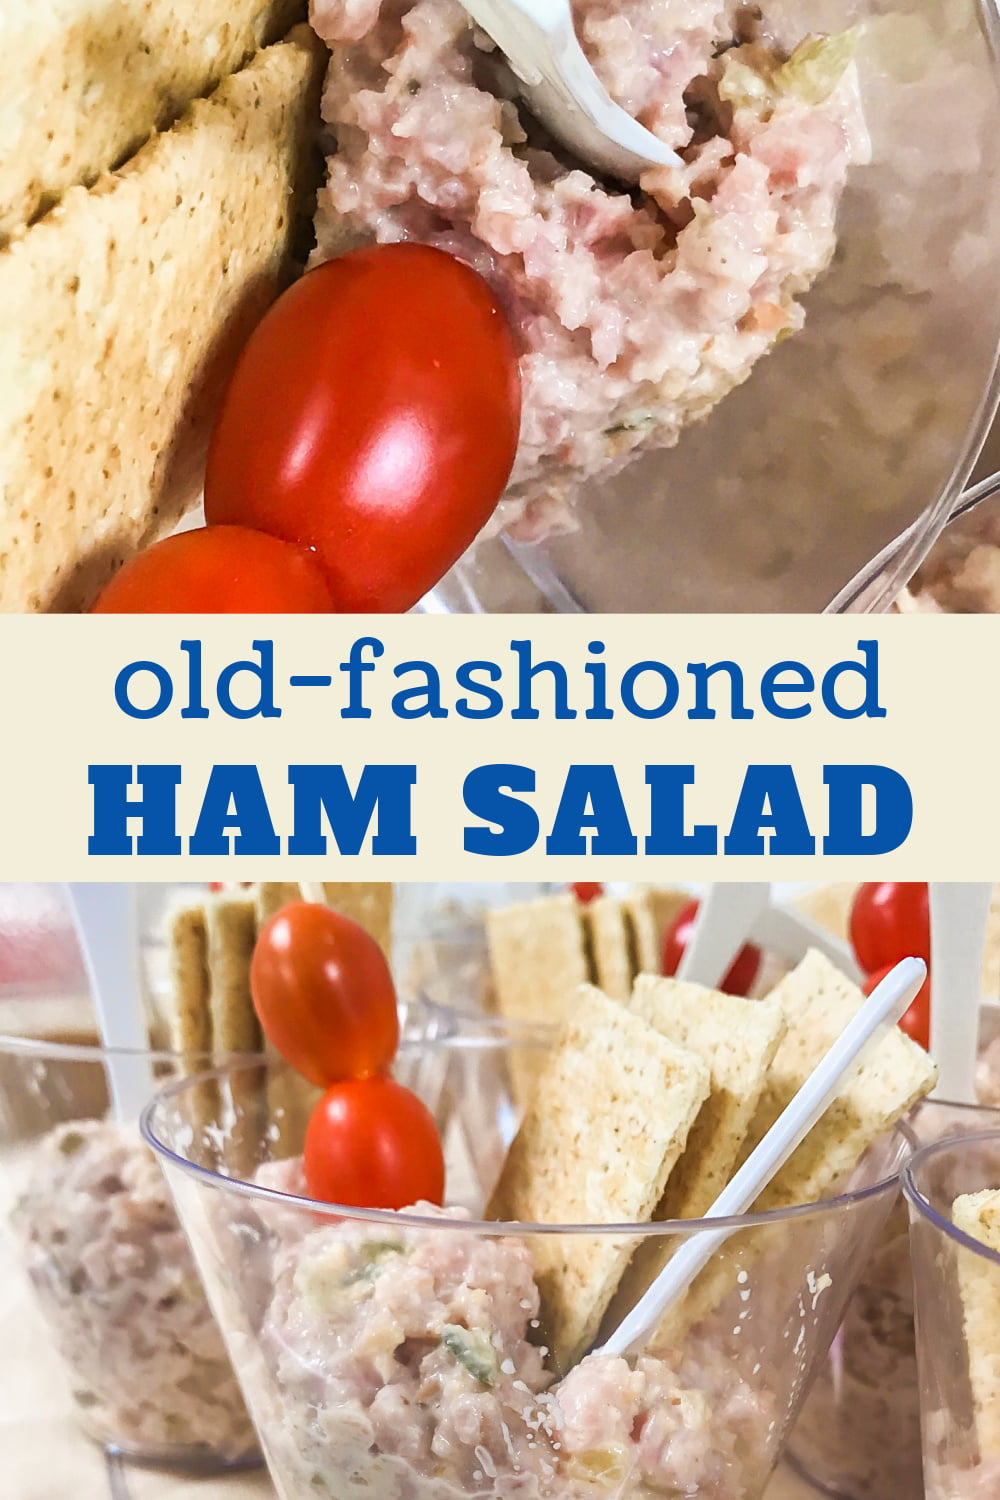 Ham salad as an appetizer served with crackers and grape tomatoes.